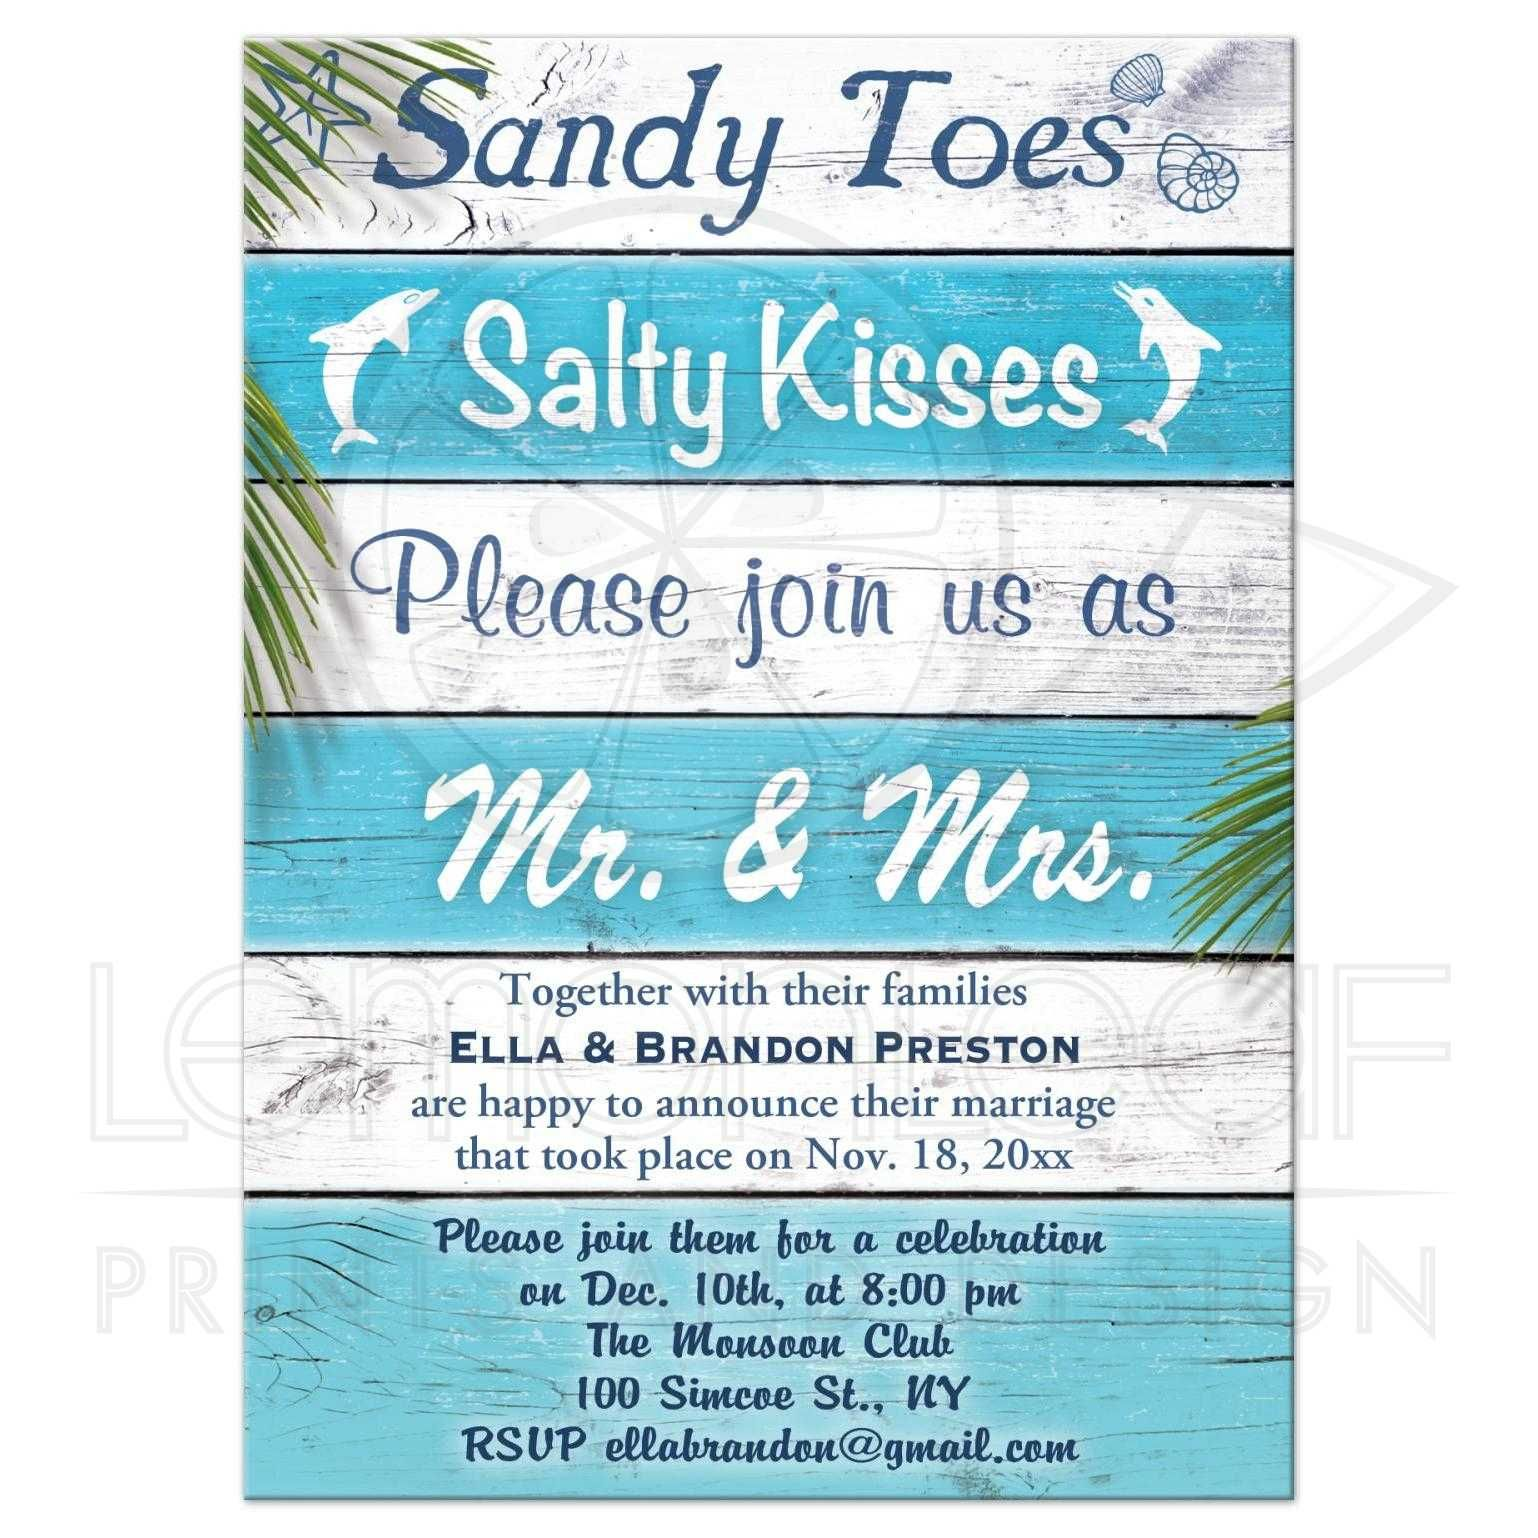 Post Wedding Reception Turquoise Beach Sandy Toes Salty Kisses